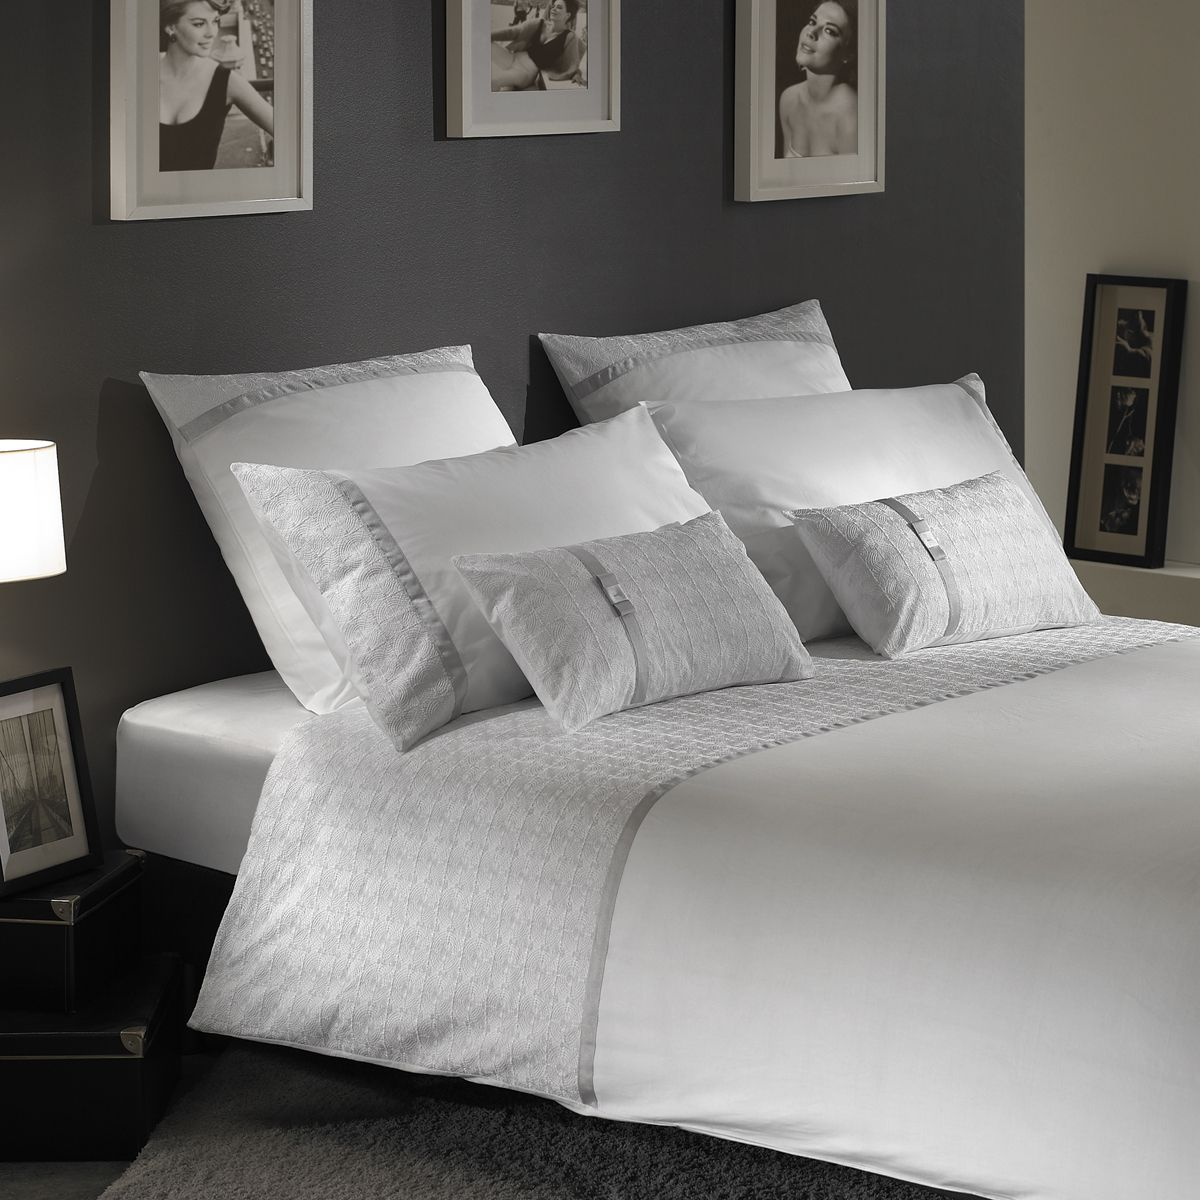 parure nataly w brod blanc percale nathaliewood n ud. Black Bedroom Furniture Sets. Home Design Ideas